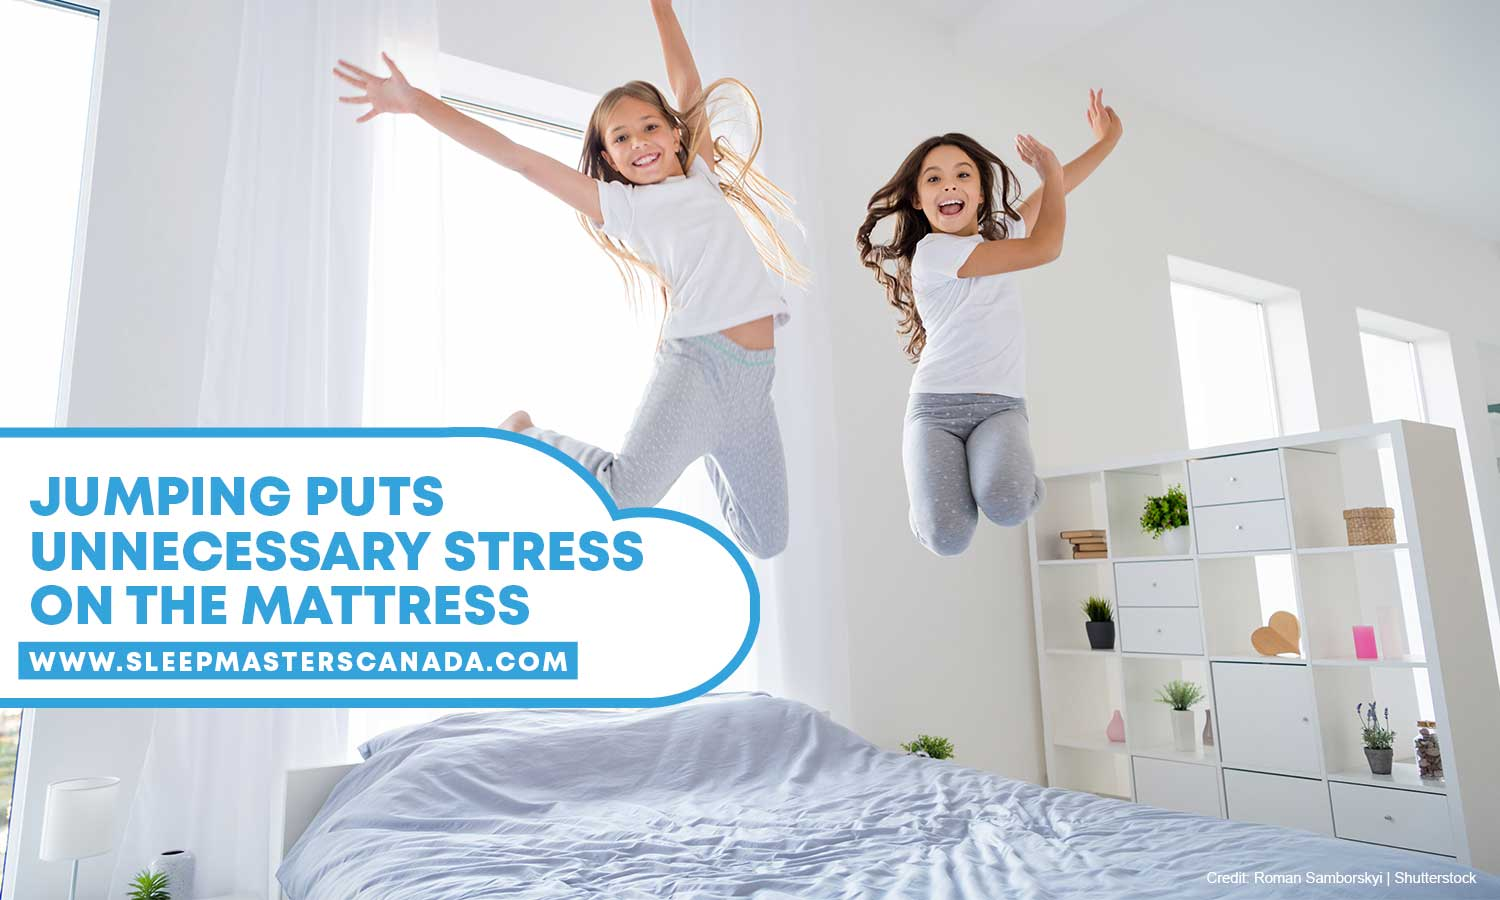 Jumping puts unnecessary stress on the mattress